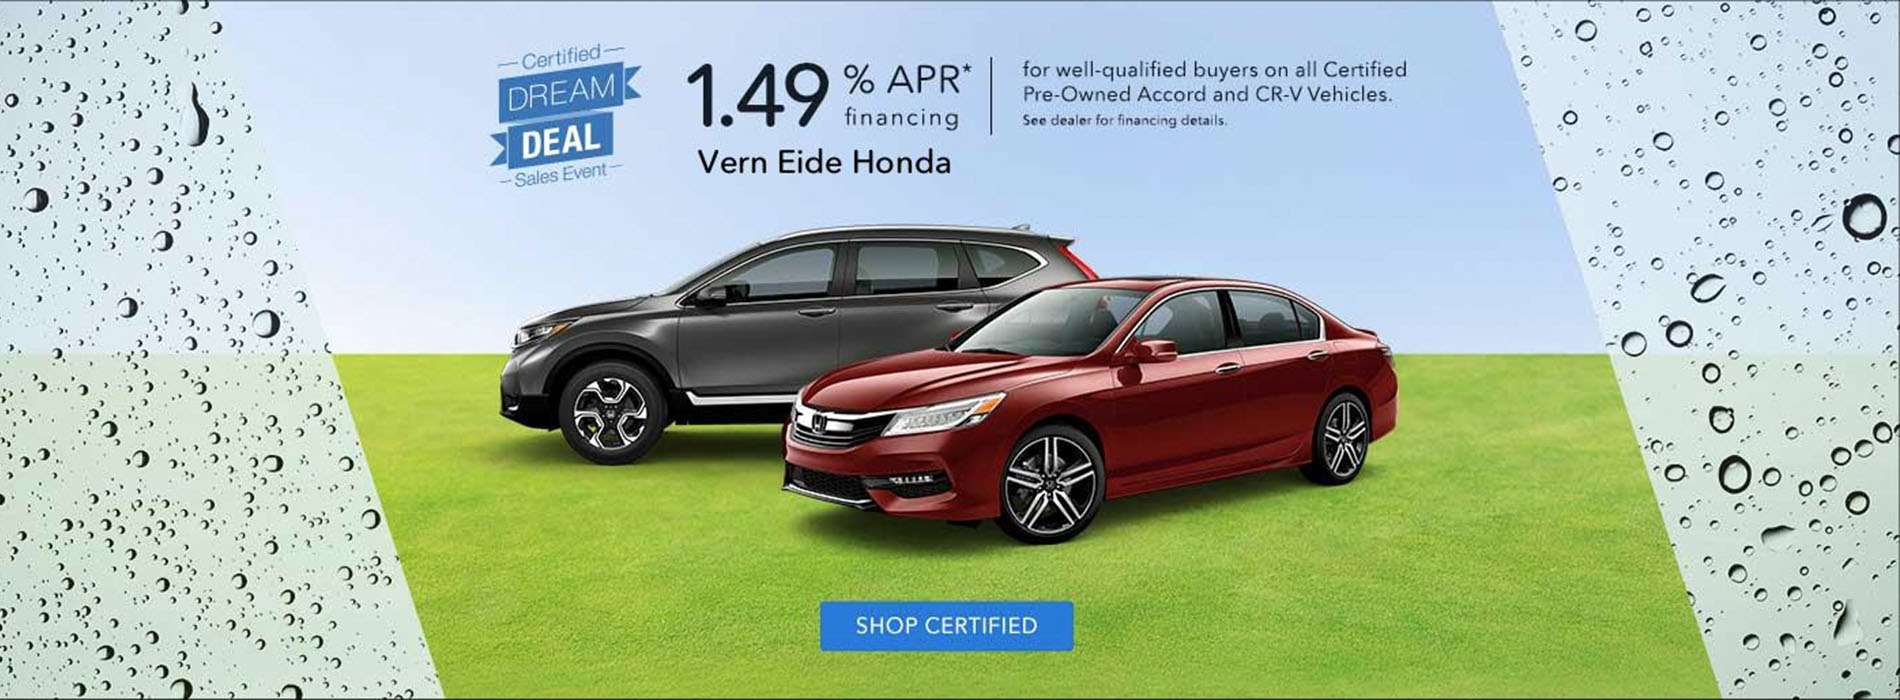 Honda - Certified Dream Deal - Feb-April 2019